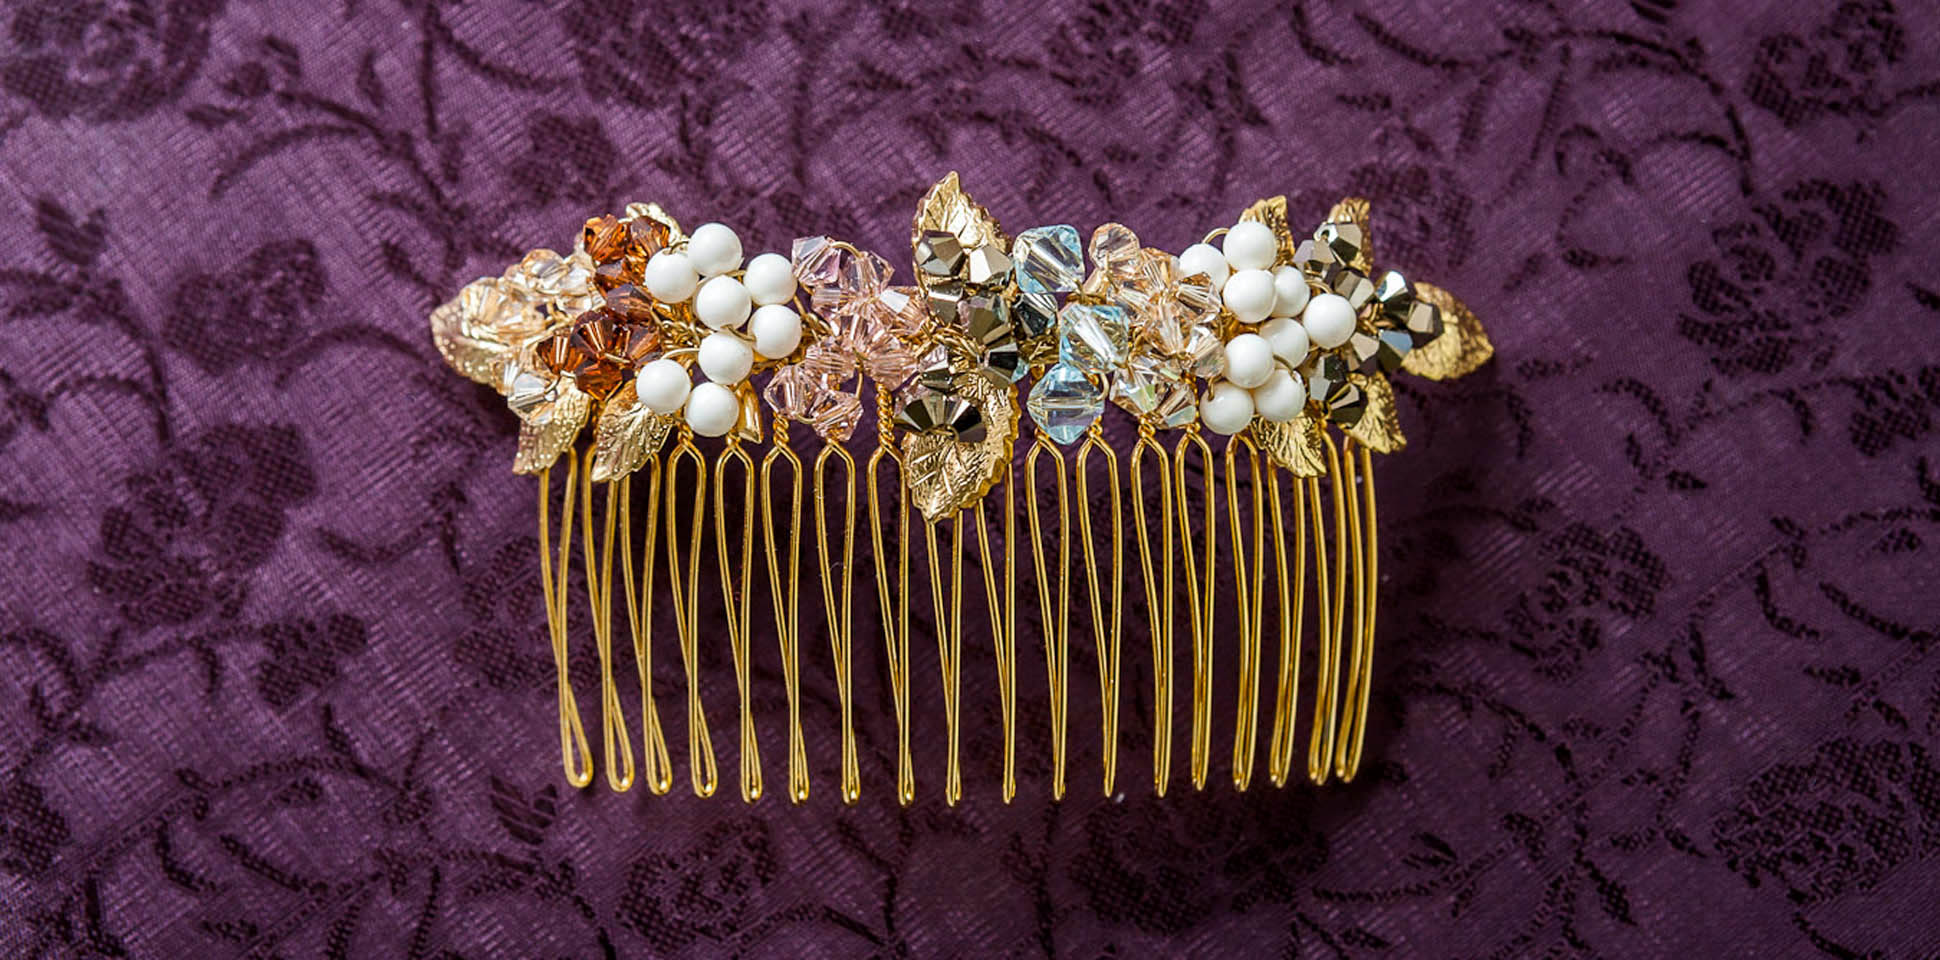 Ellen Hunter NYC - Custom Hair Accessories & Jewelry